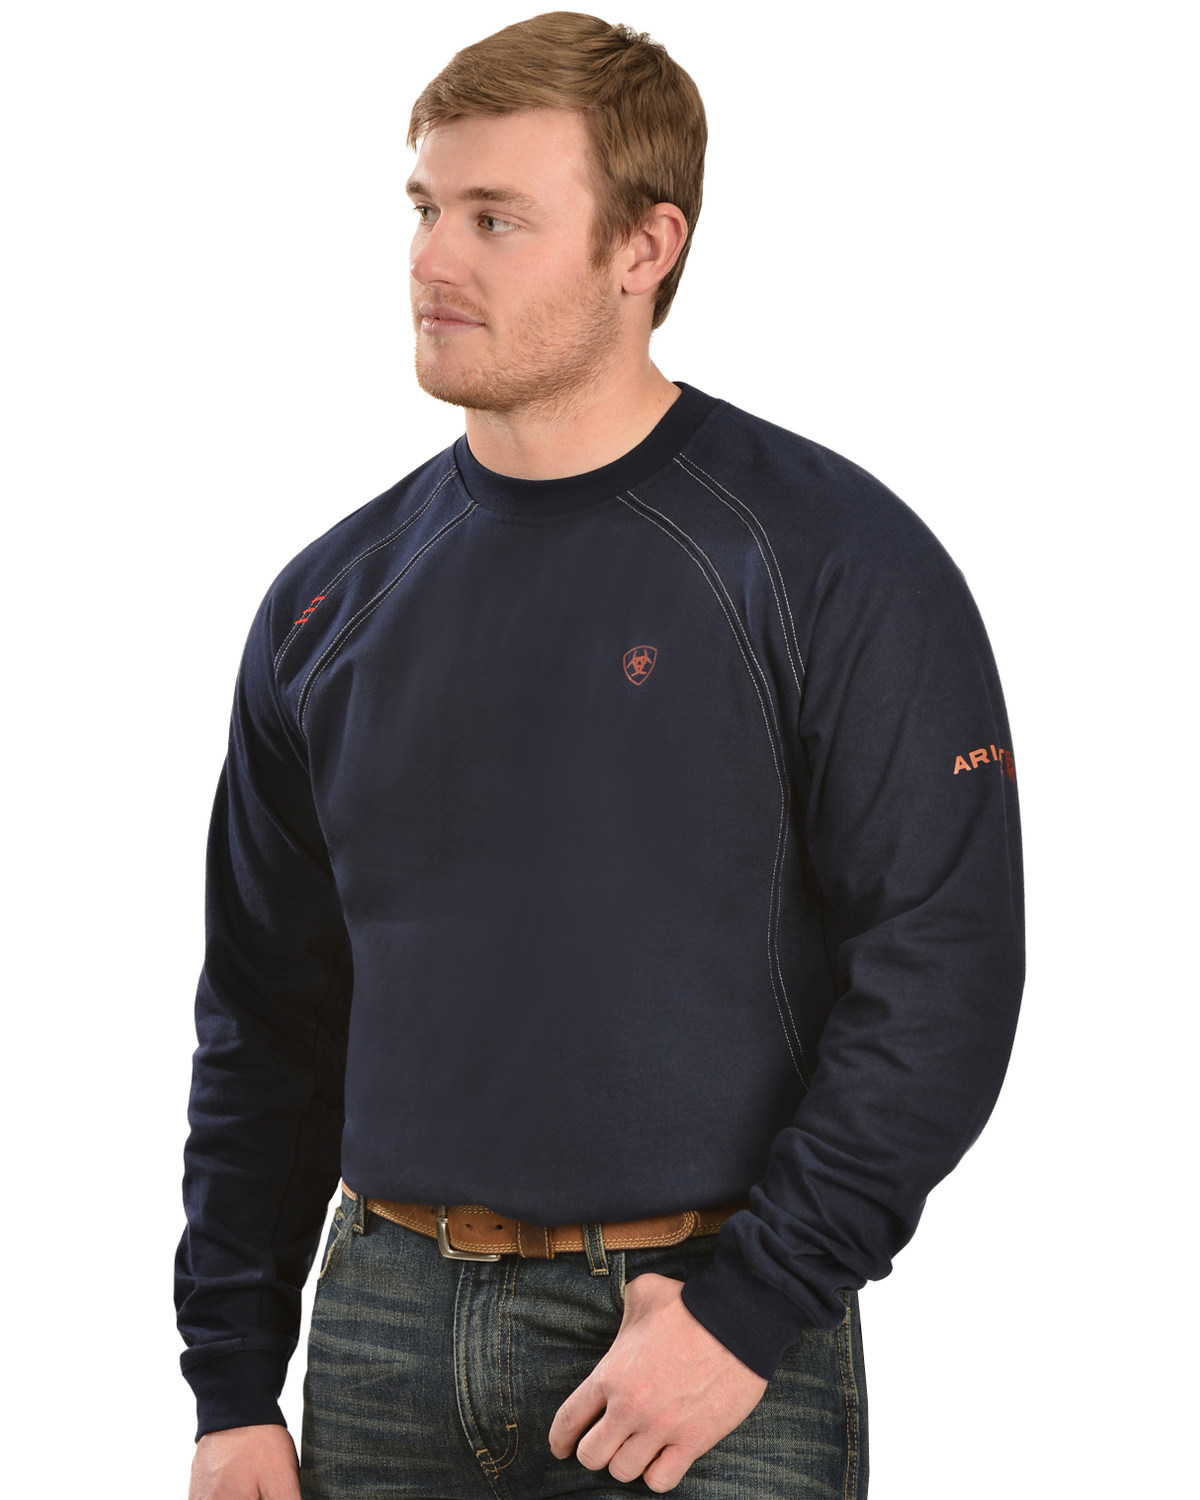 cdf03fc754 Zoomed Image Ariat Flame Resistant Workwear Crew Long Sleeve T-Shirt - Big  & Tall, Navy